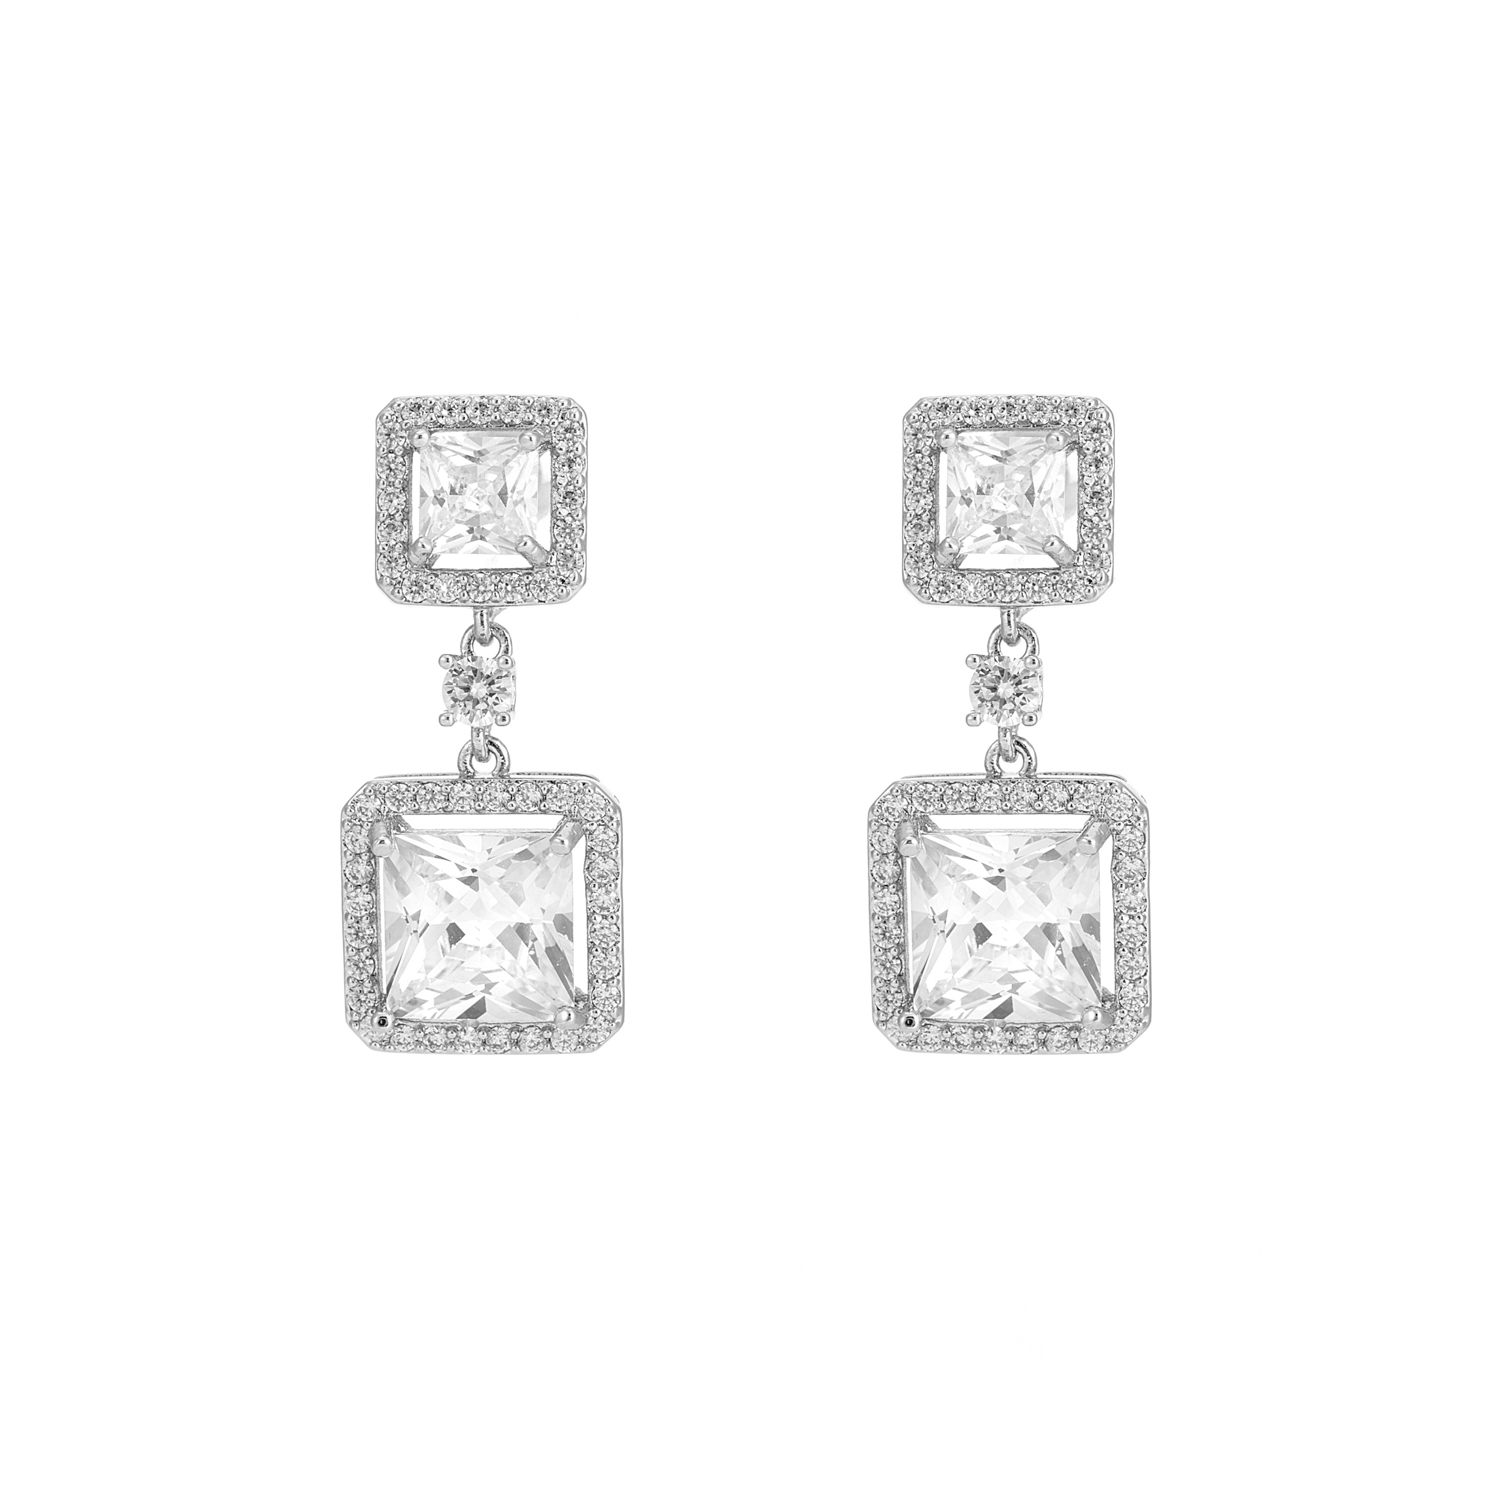 SILVER Be Bold Square Crystal Earrings